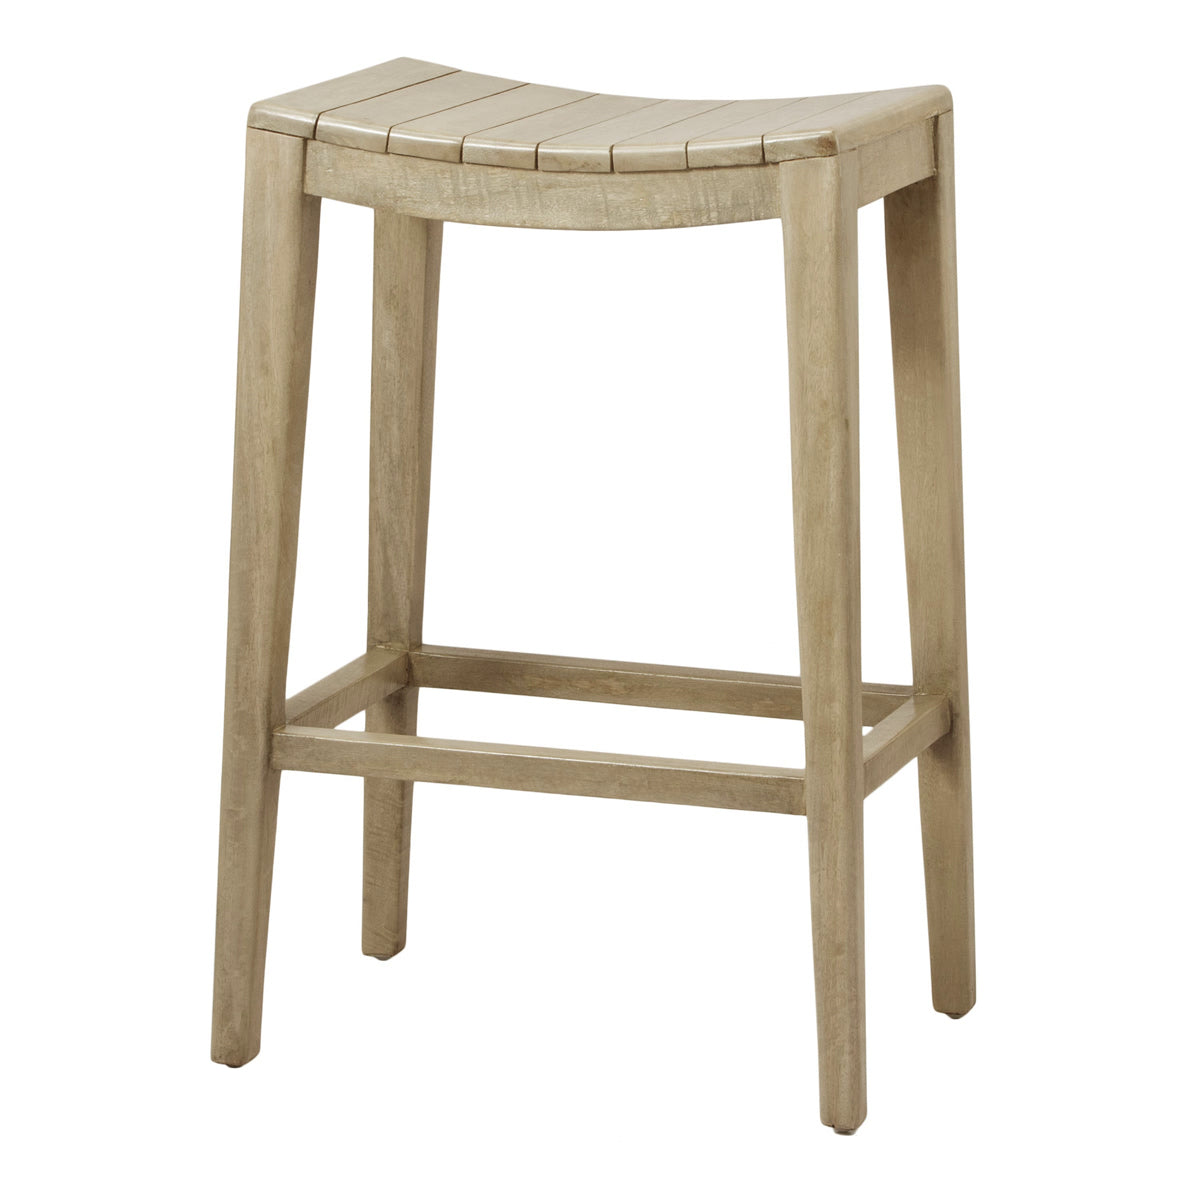 Elmo Wooden Bar Stool by New Pacific Direct - 6600011-WG